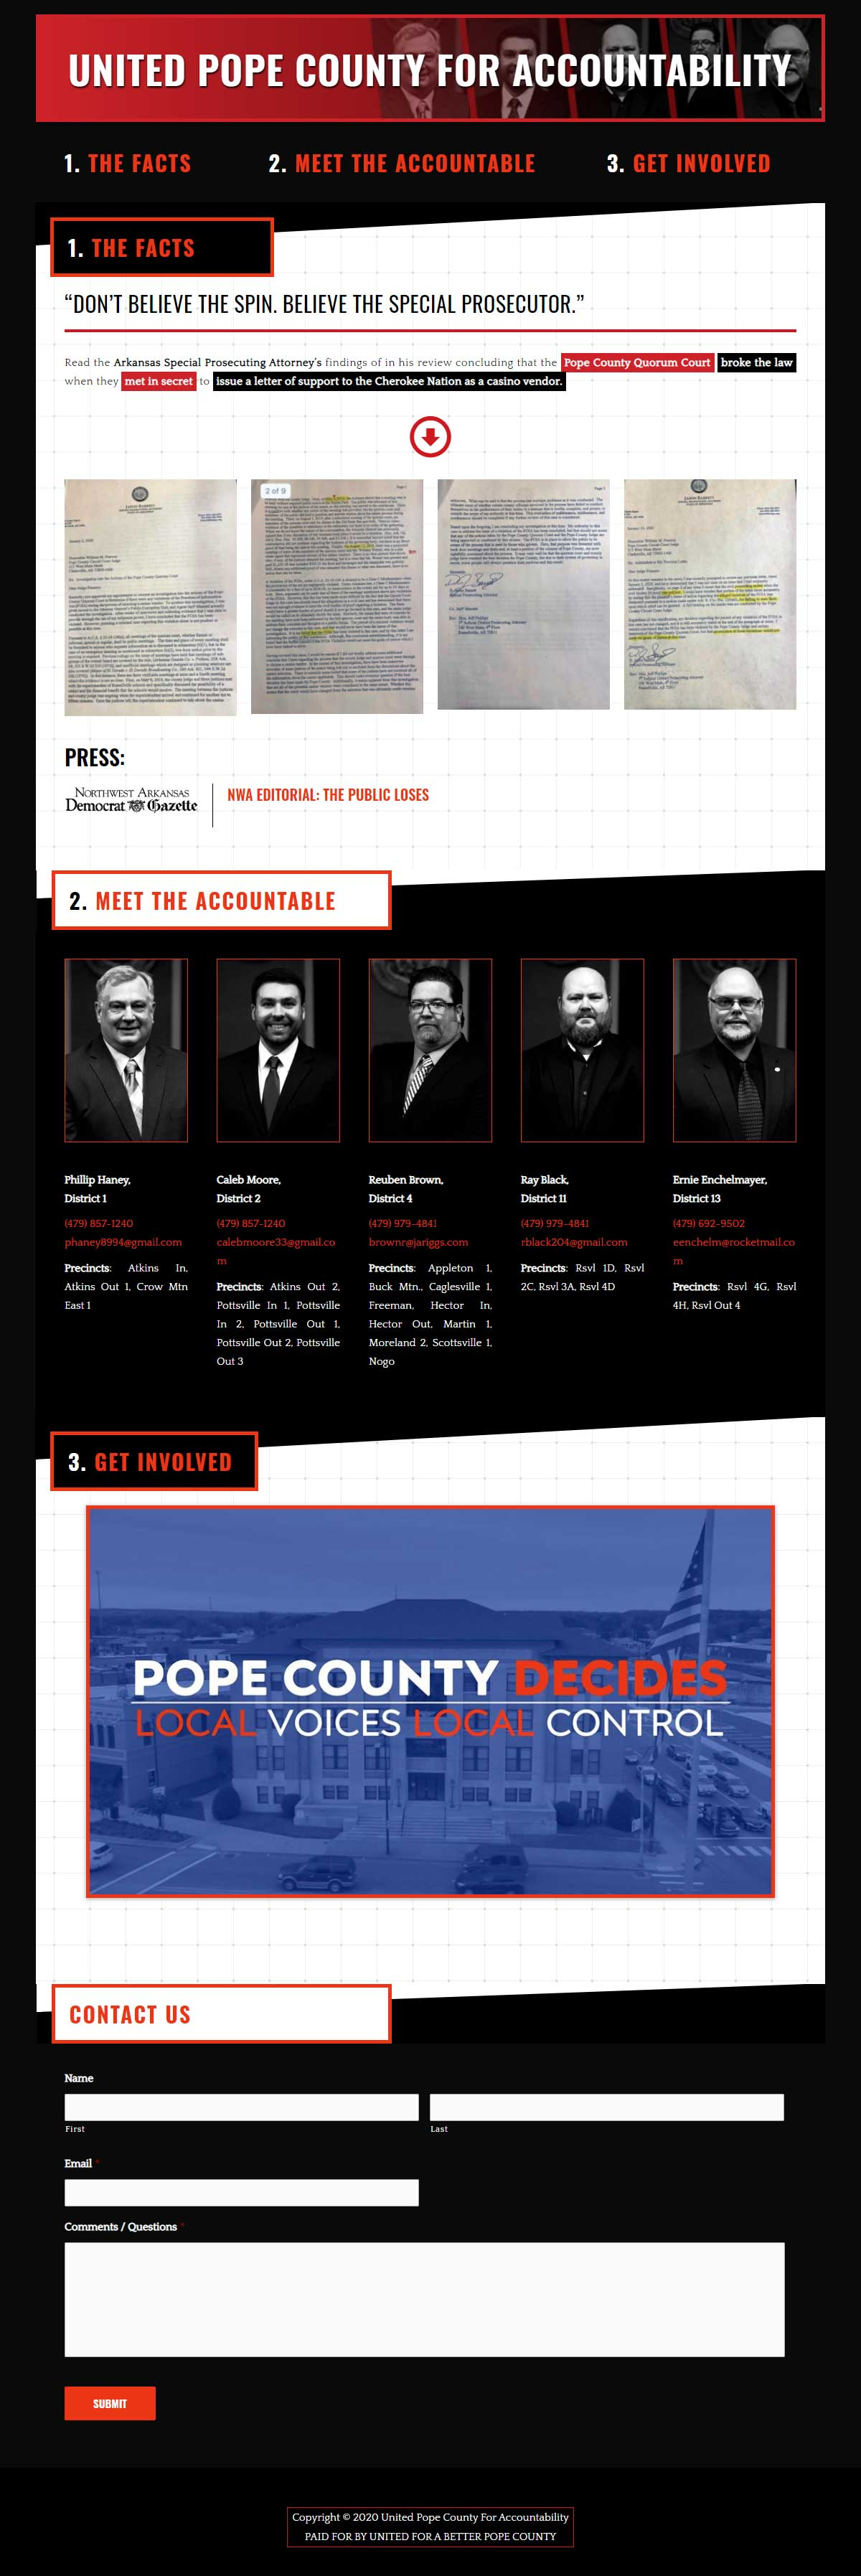 United Pope County For Accountability